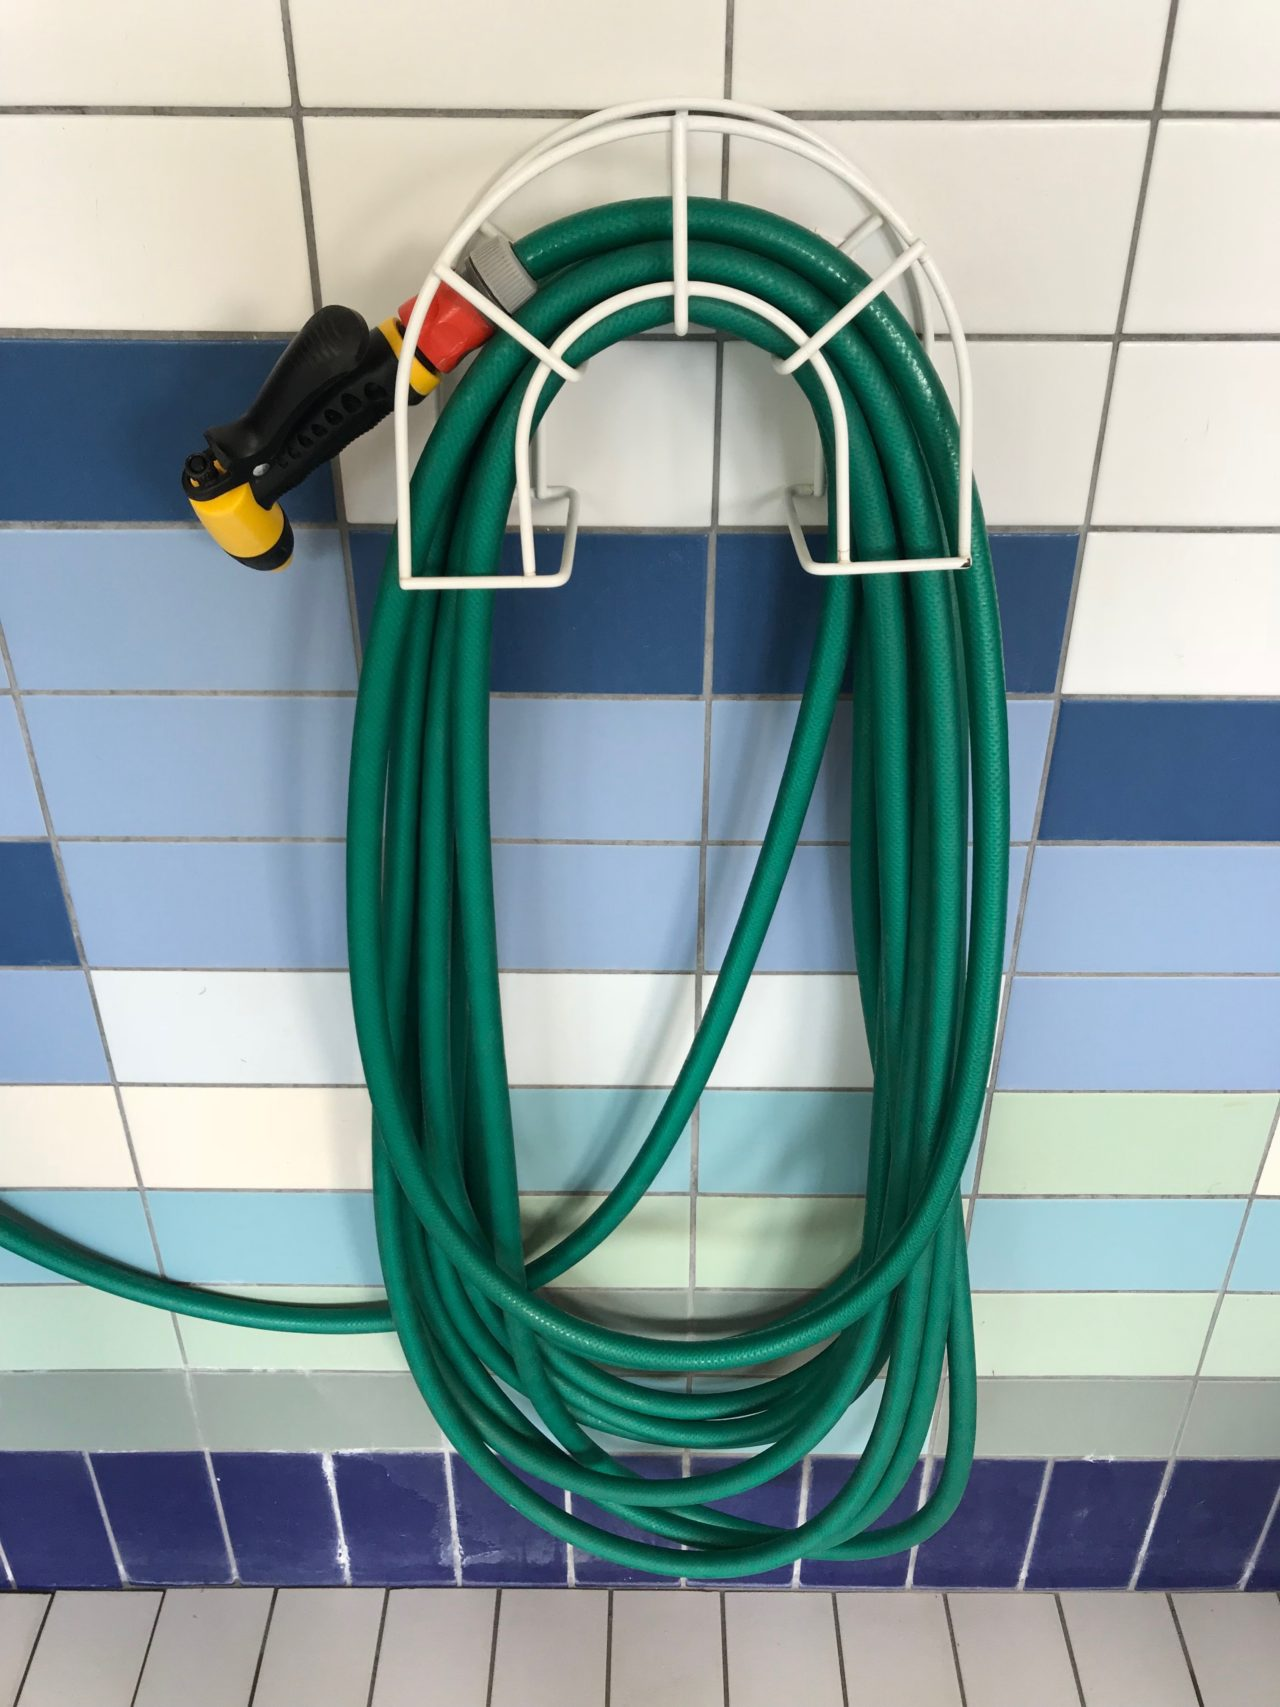 Rolled Up Green Water Hose Hanging On Tiled Wall